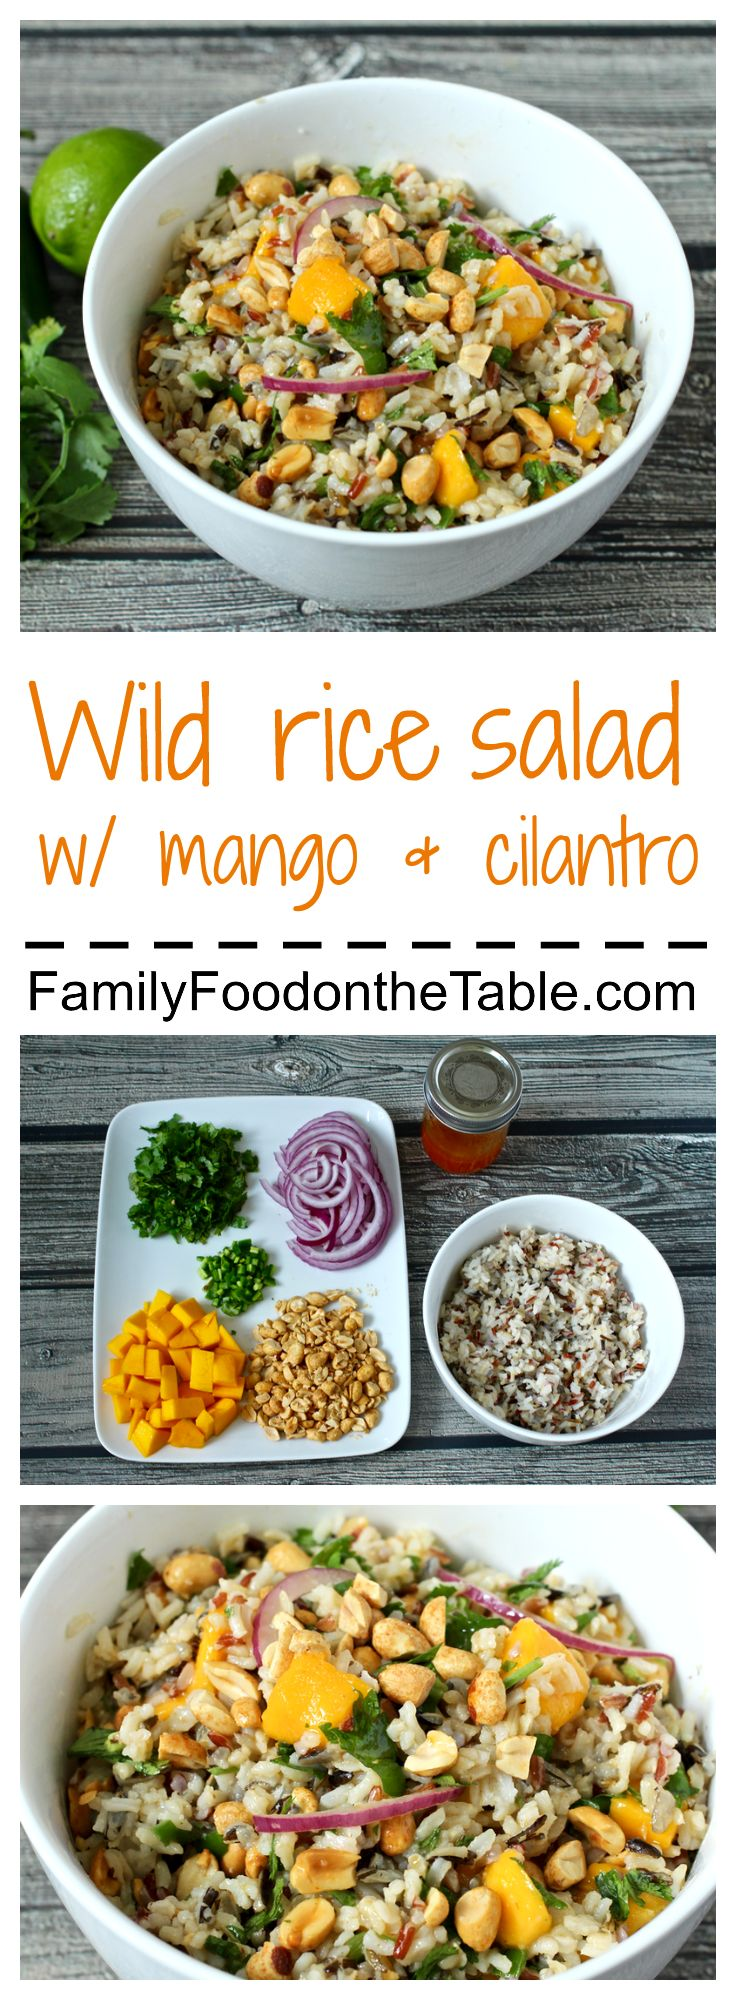 Wild rice salad with mango, cilantro, peanuts and a lime-srirachi vinaigrette - amazing flavors! | FamilyFoodontheTable.com